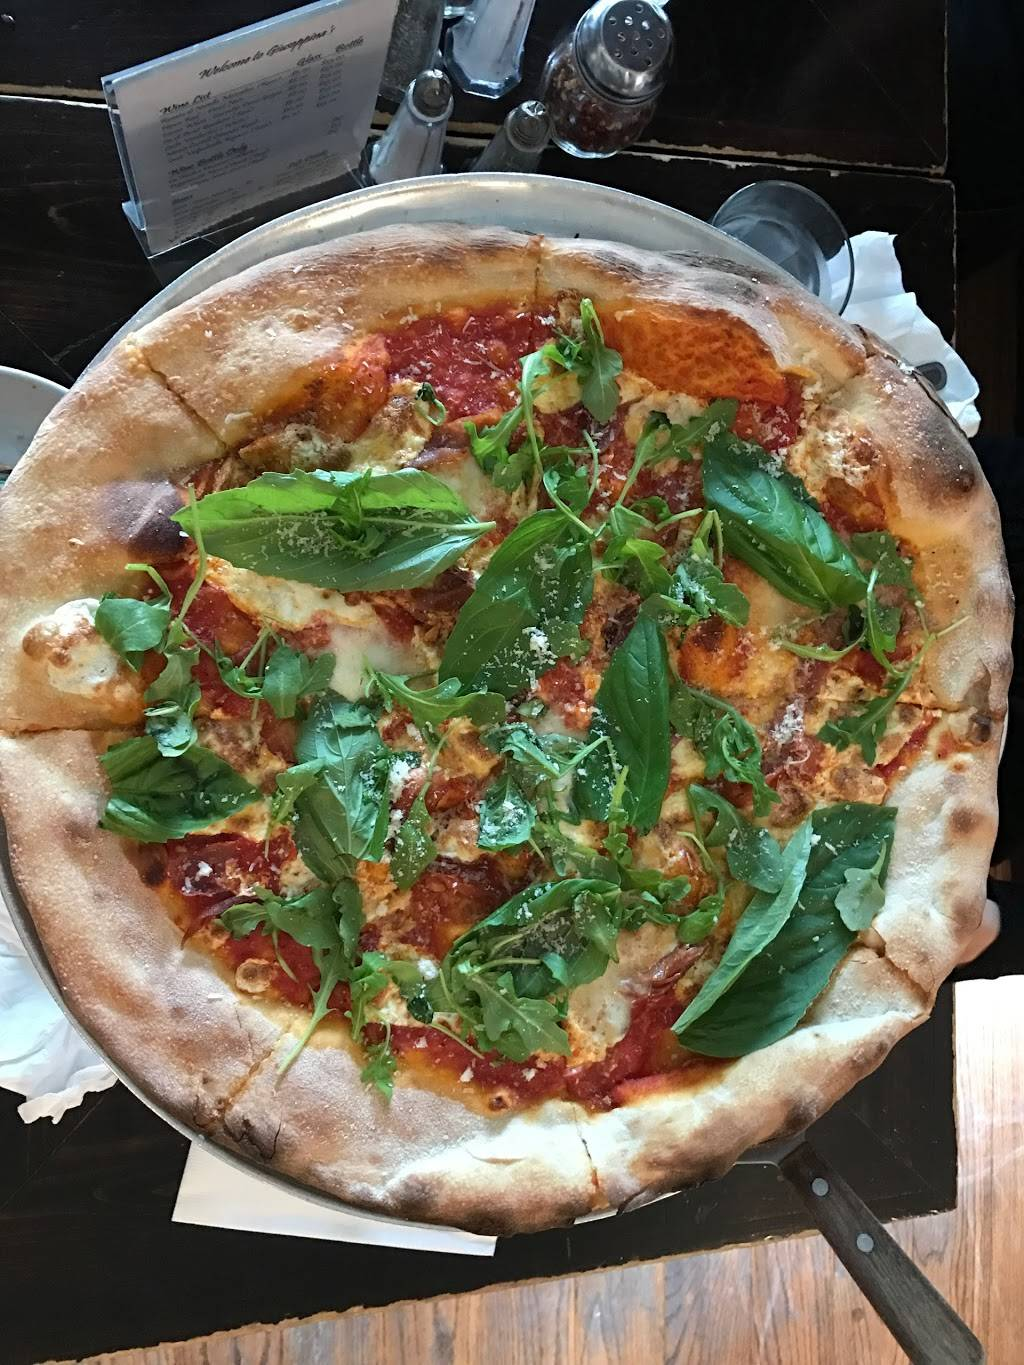 Giuseppinas Brick Oven Pizza | meal takeaway | 691 6th Ave, Brooklyn, NY 11215, USA | 7184995052 OR +1 718-499-5052